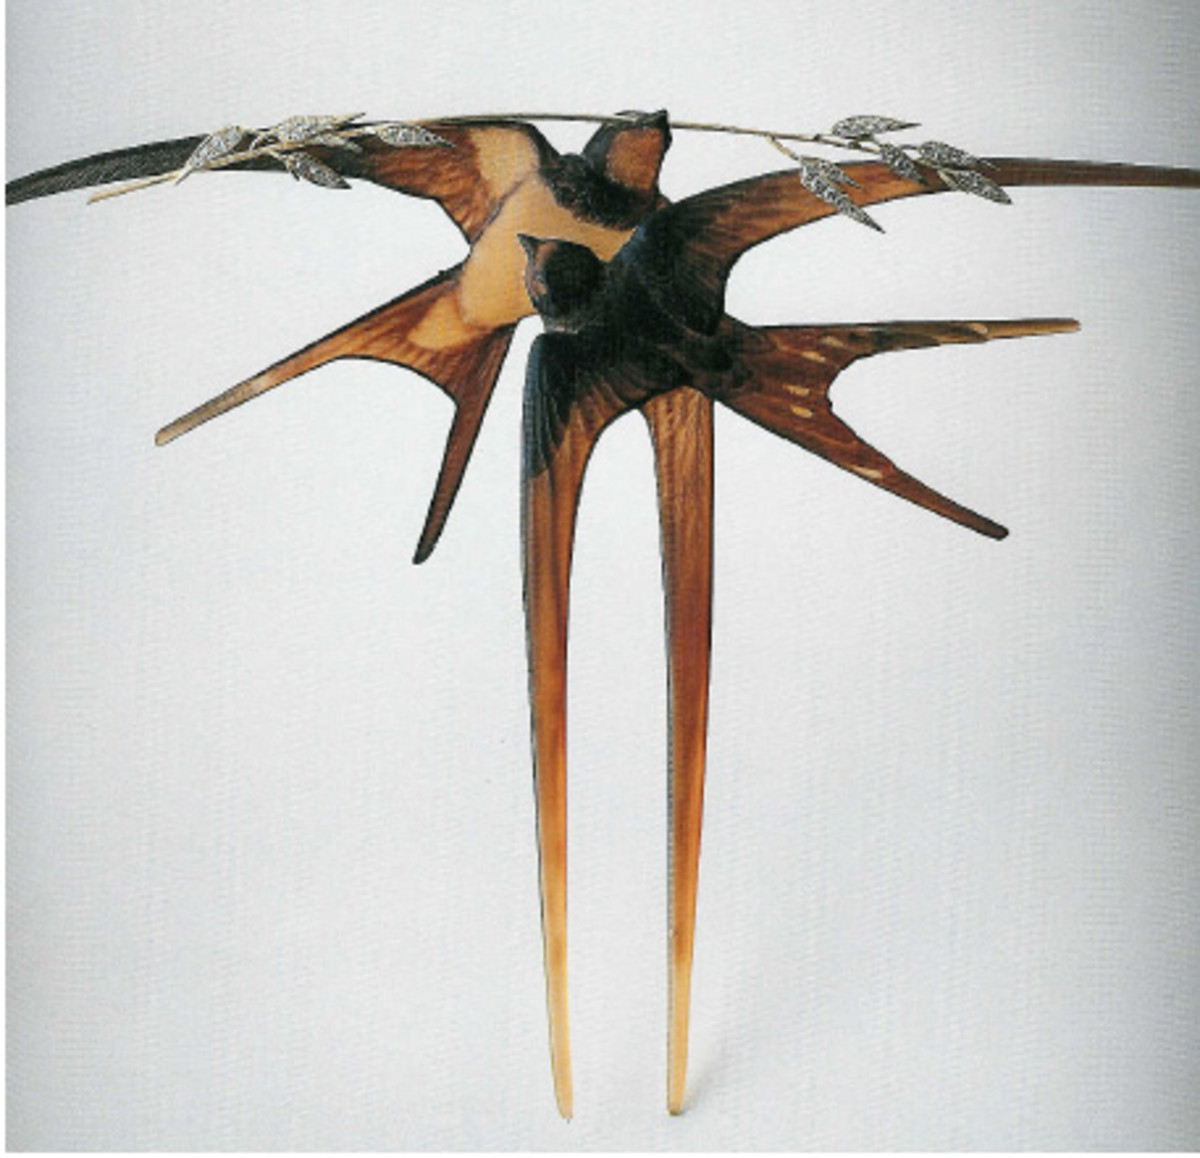 """Japanese hair combs captivated the European world when they were introduced at the Paris exhibition of 1867 and started a craze in France called Japonisme. The Japanese had a close relationship with nature, which produced some stunning jewelry, and Western artists, including Lalique, became influenced by this. The inspiration of nature, and the motif of swallows, which was common in Japan, is seen in this hair comb, """"Two Swallows with a Stalk of Oats."""" Circa 1906-1908, the comb is made of carved horn, gold and diamonds, and the bird's wings are elongated to form the its prongs."""